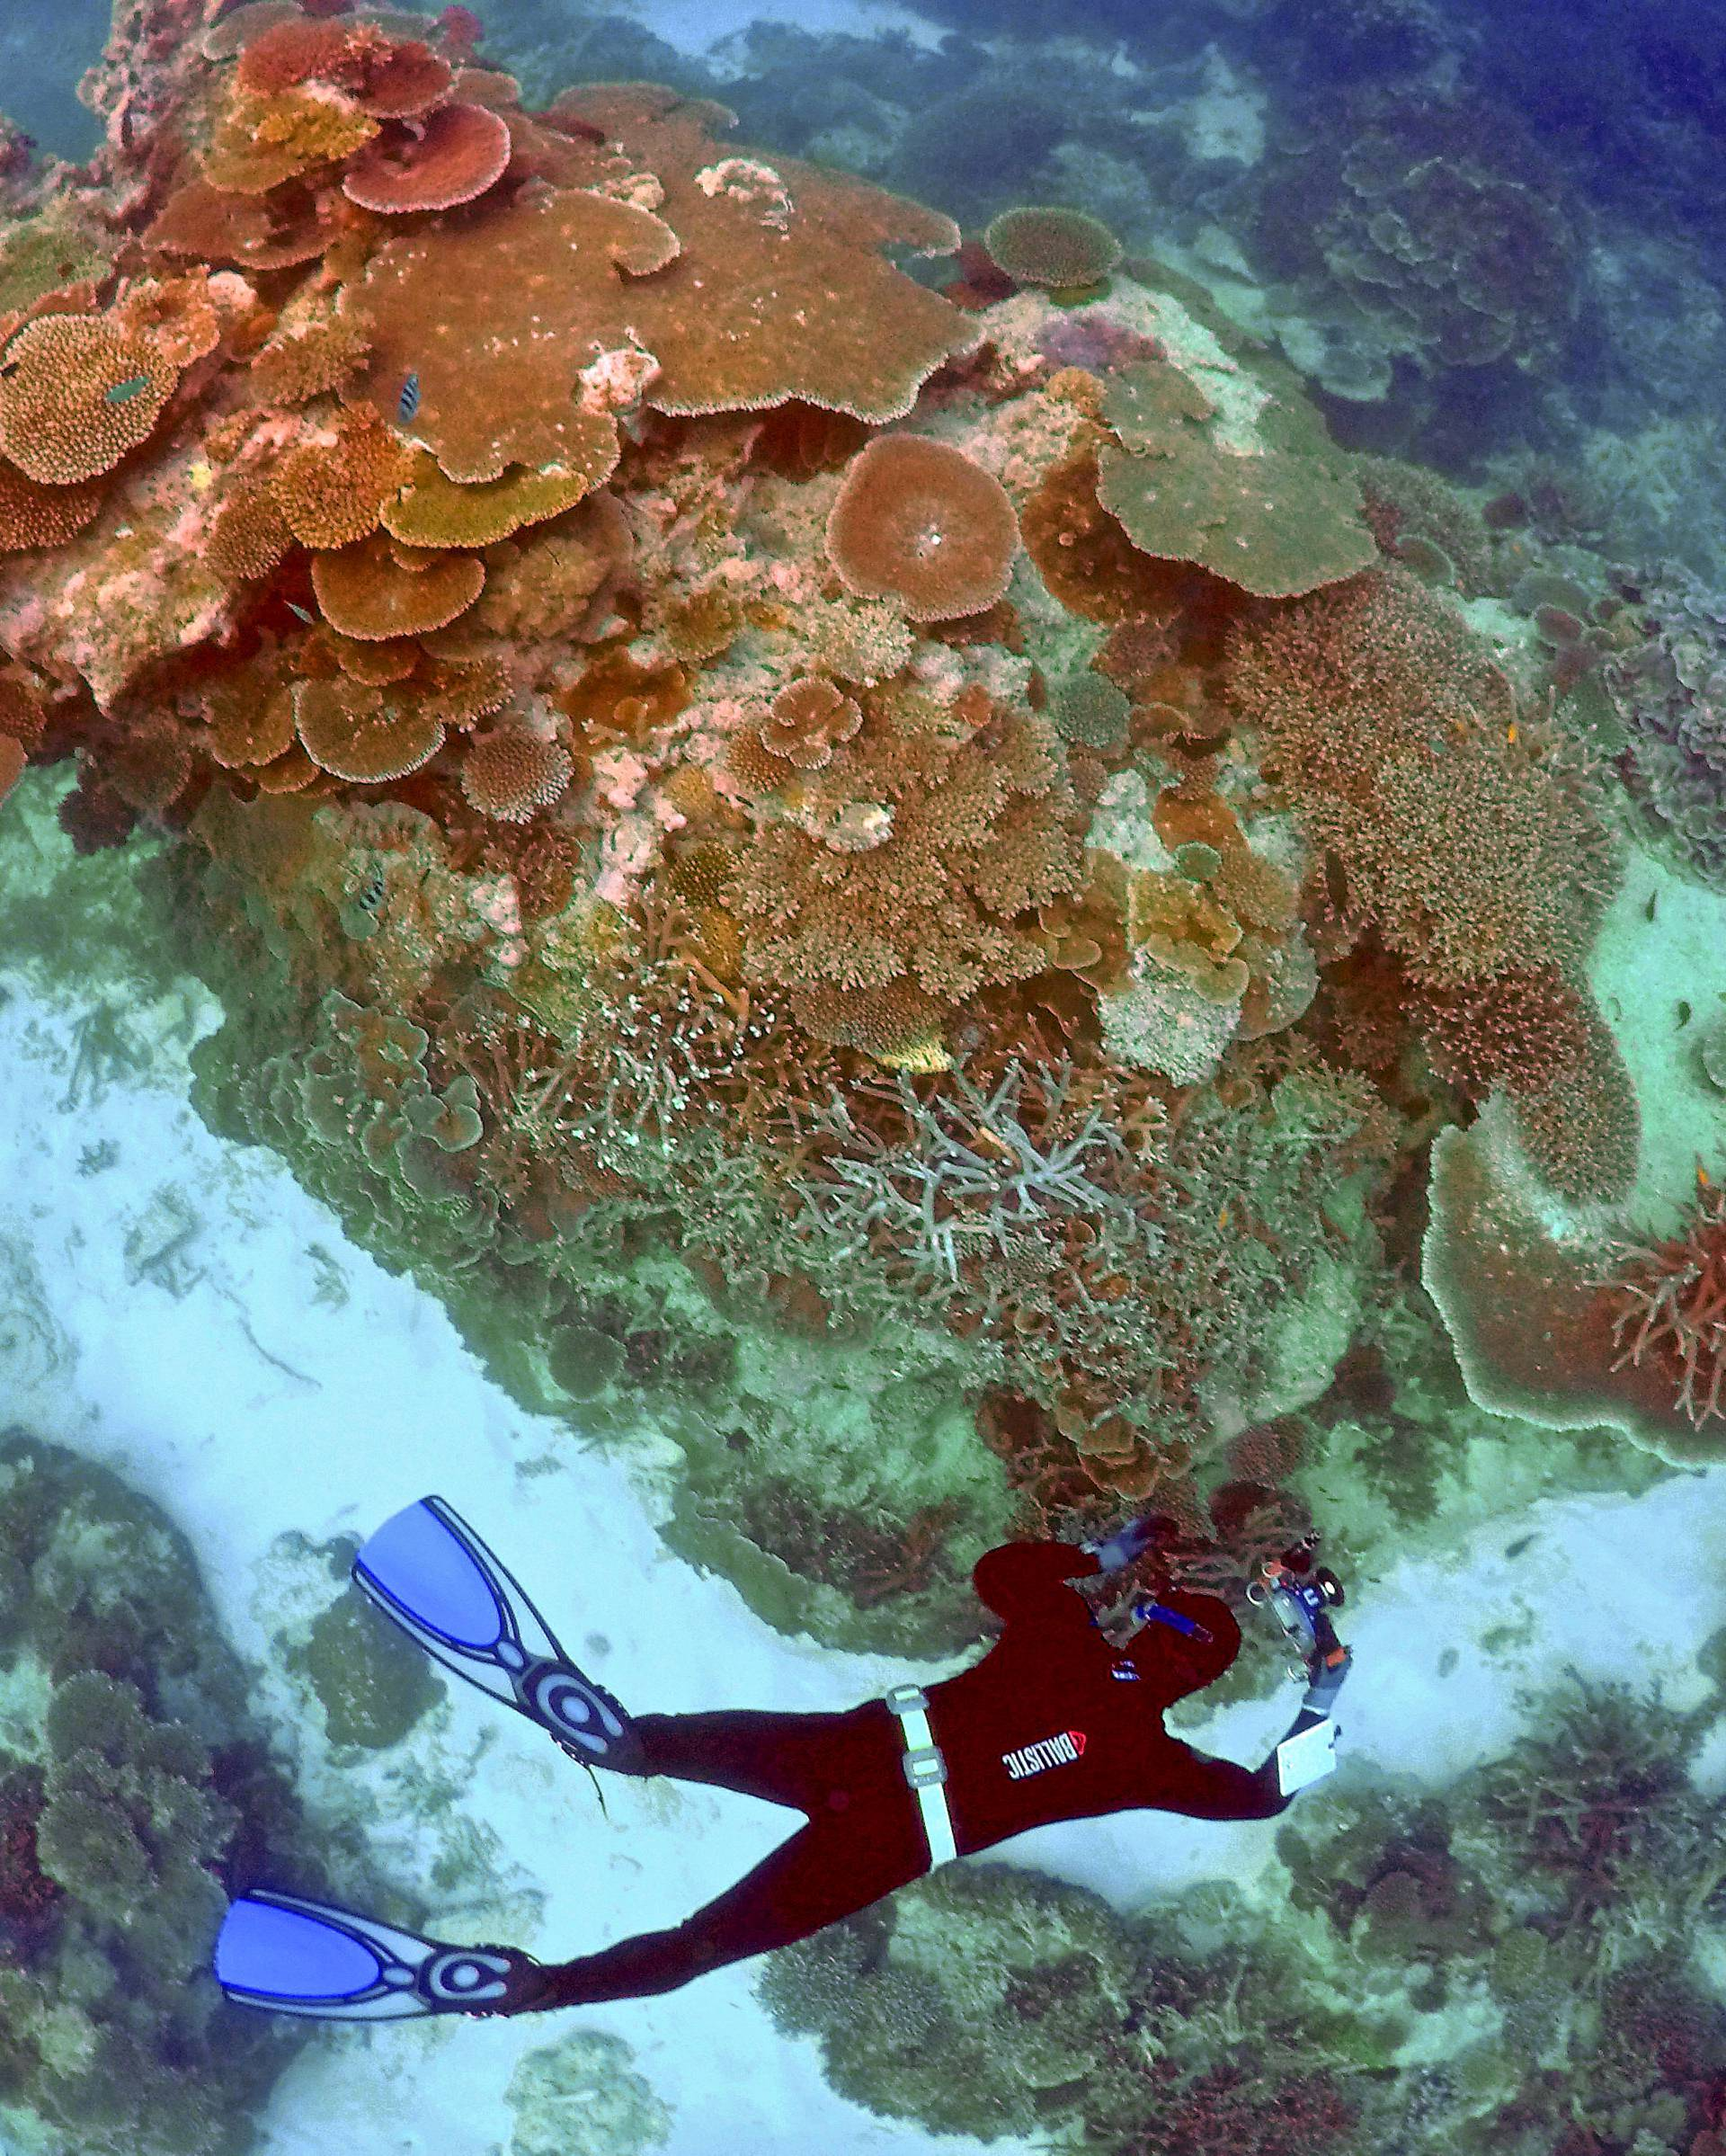 FILE PHOTO --  Oliver Lanyon takes photographs and notes during an inspection of the reef's condition in an area called the 'Coral Gardens' located at Lady Elliot Island